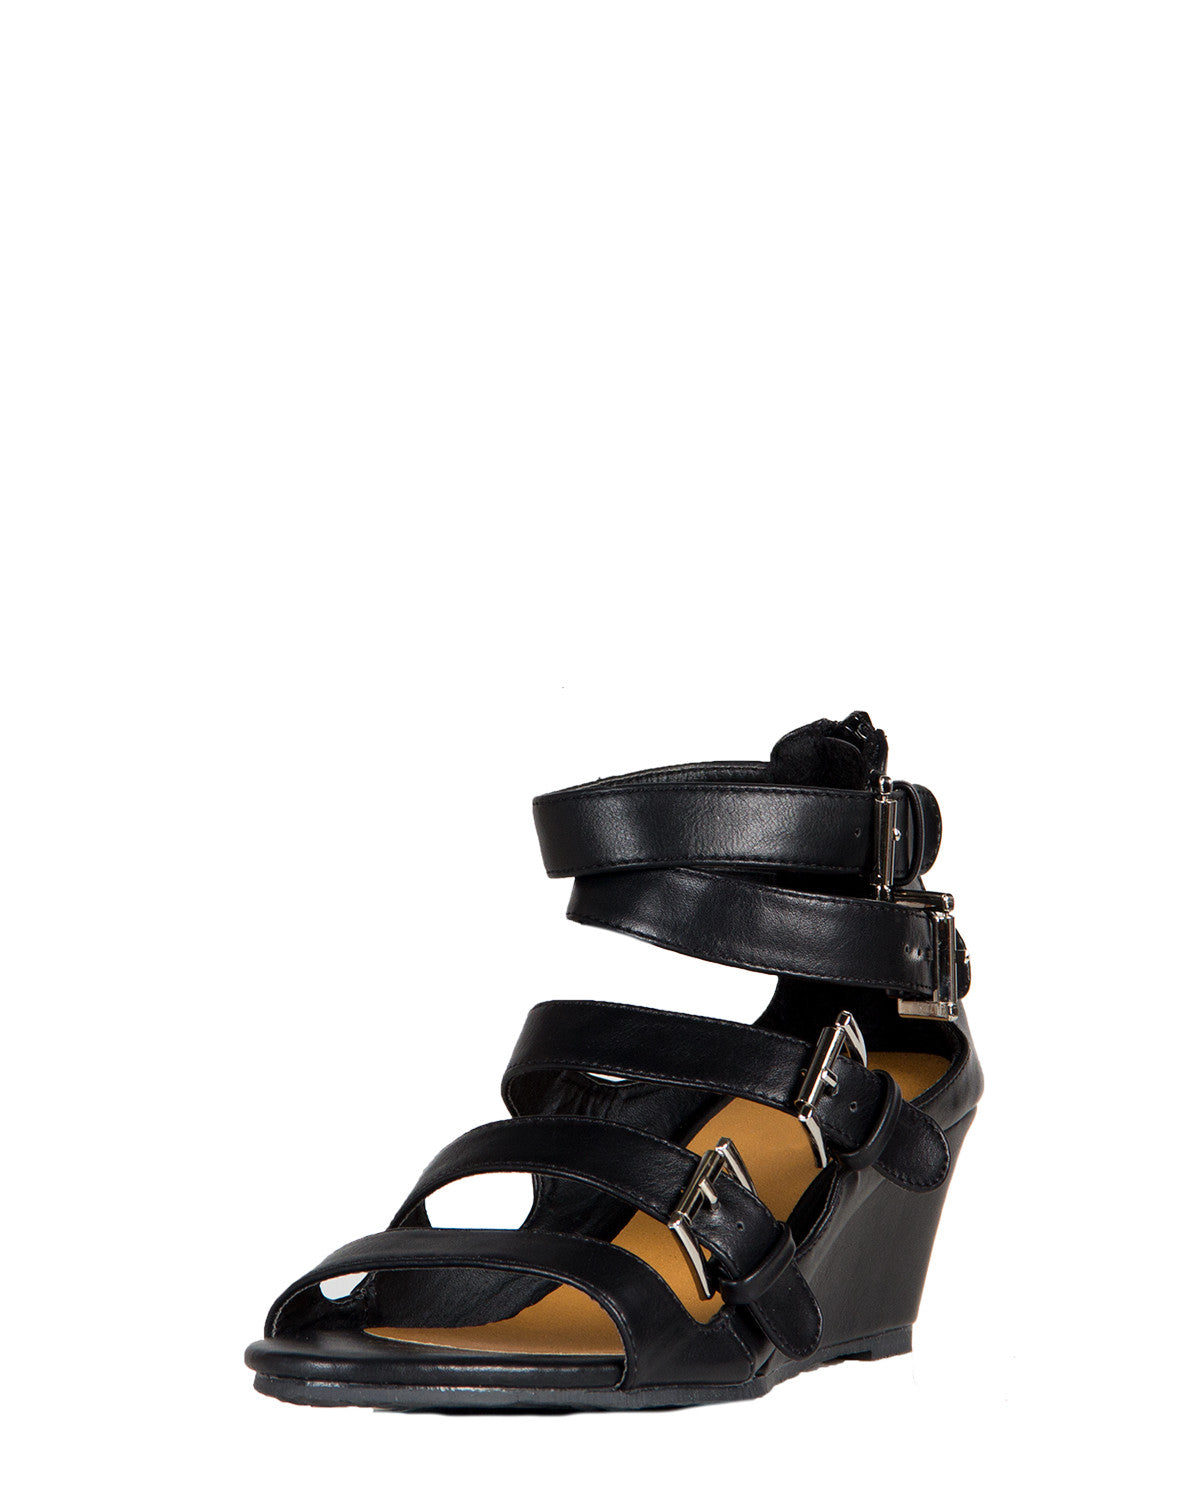 Buckle Down Wedge Sandals - Black